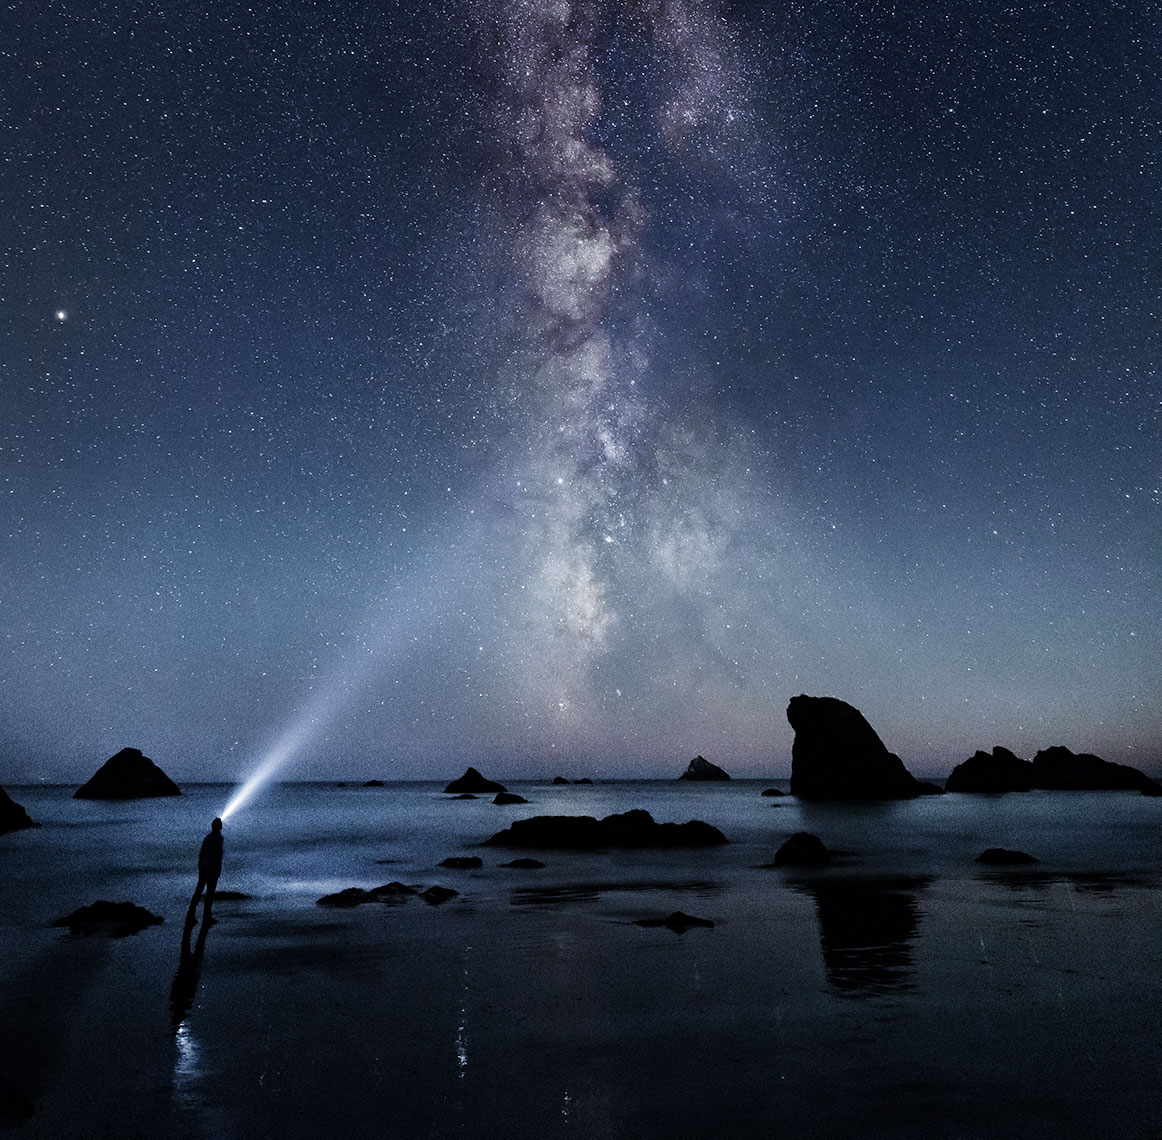 Milky-Way-and-a-headlamp